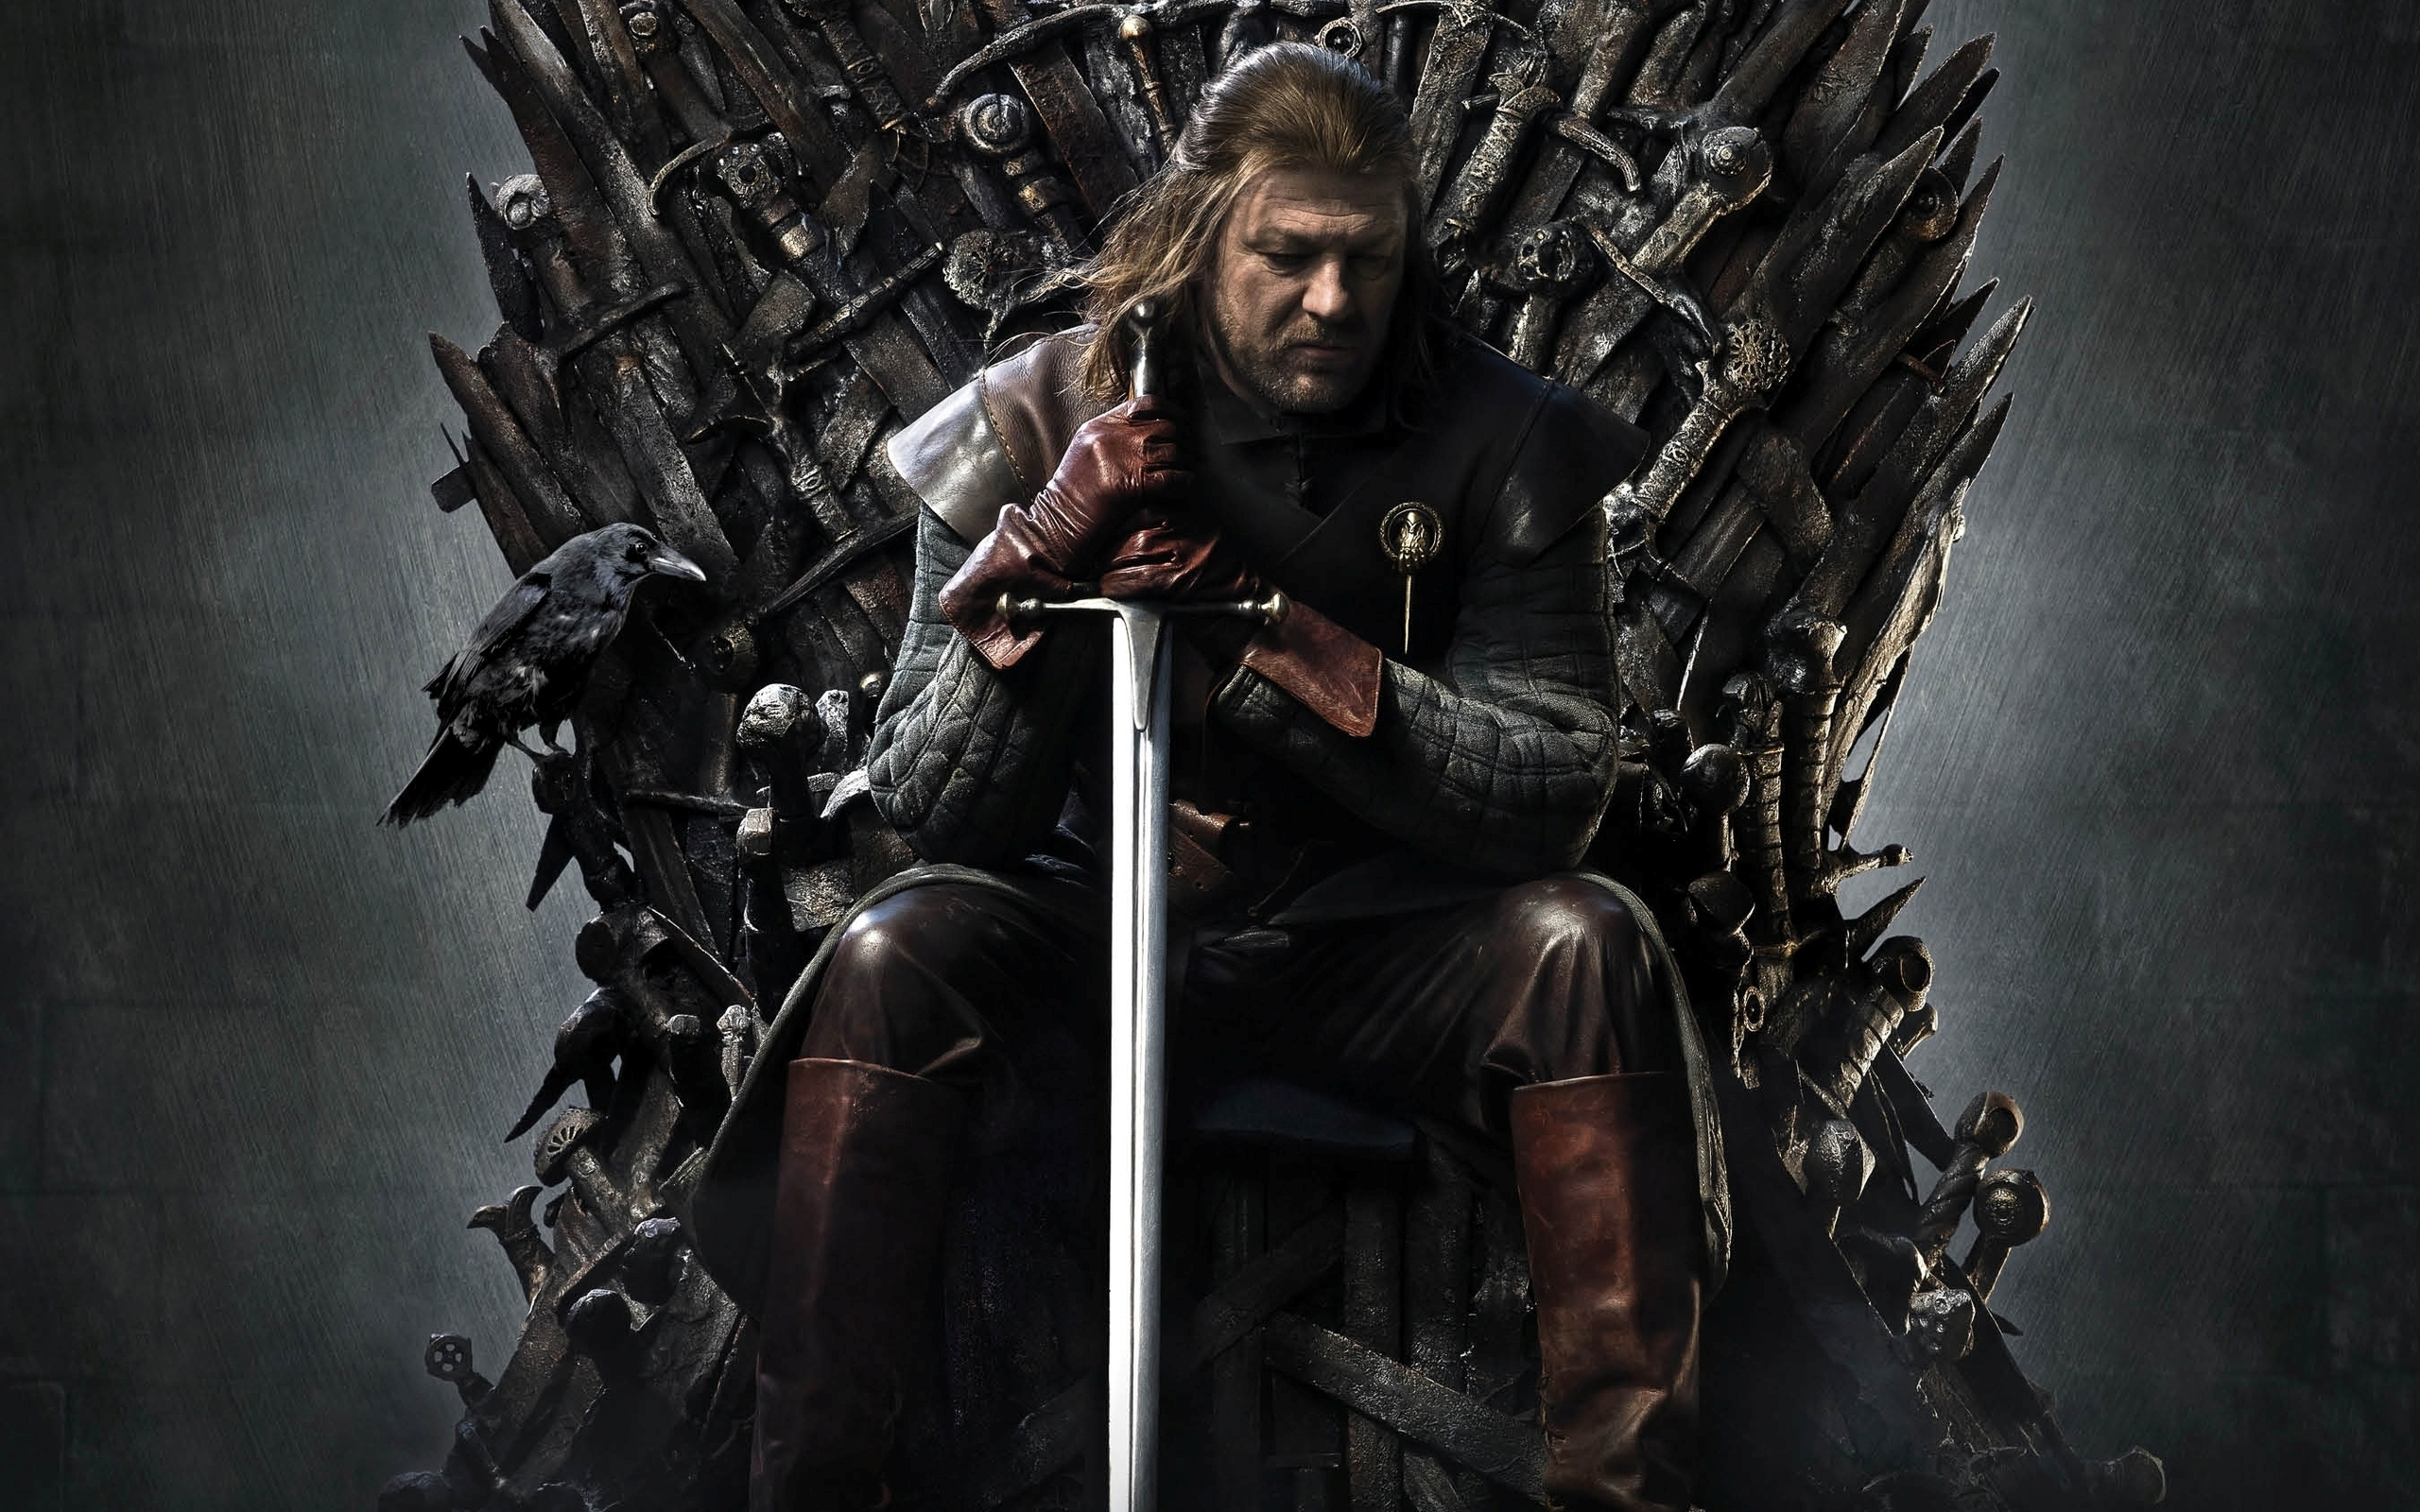 3210 Game Of Thrones HD Wallpapers Background Images   Wallpaper 2560x1600